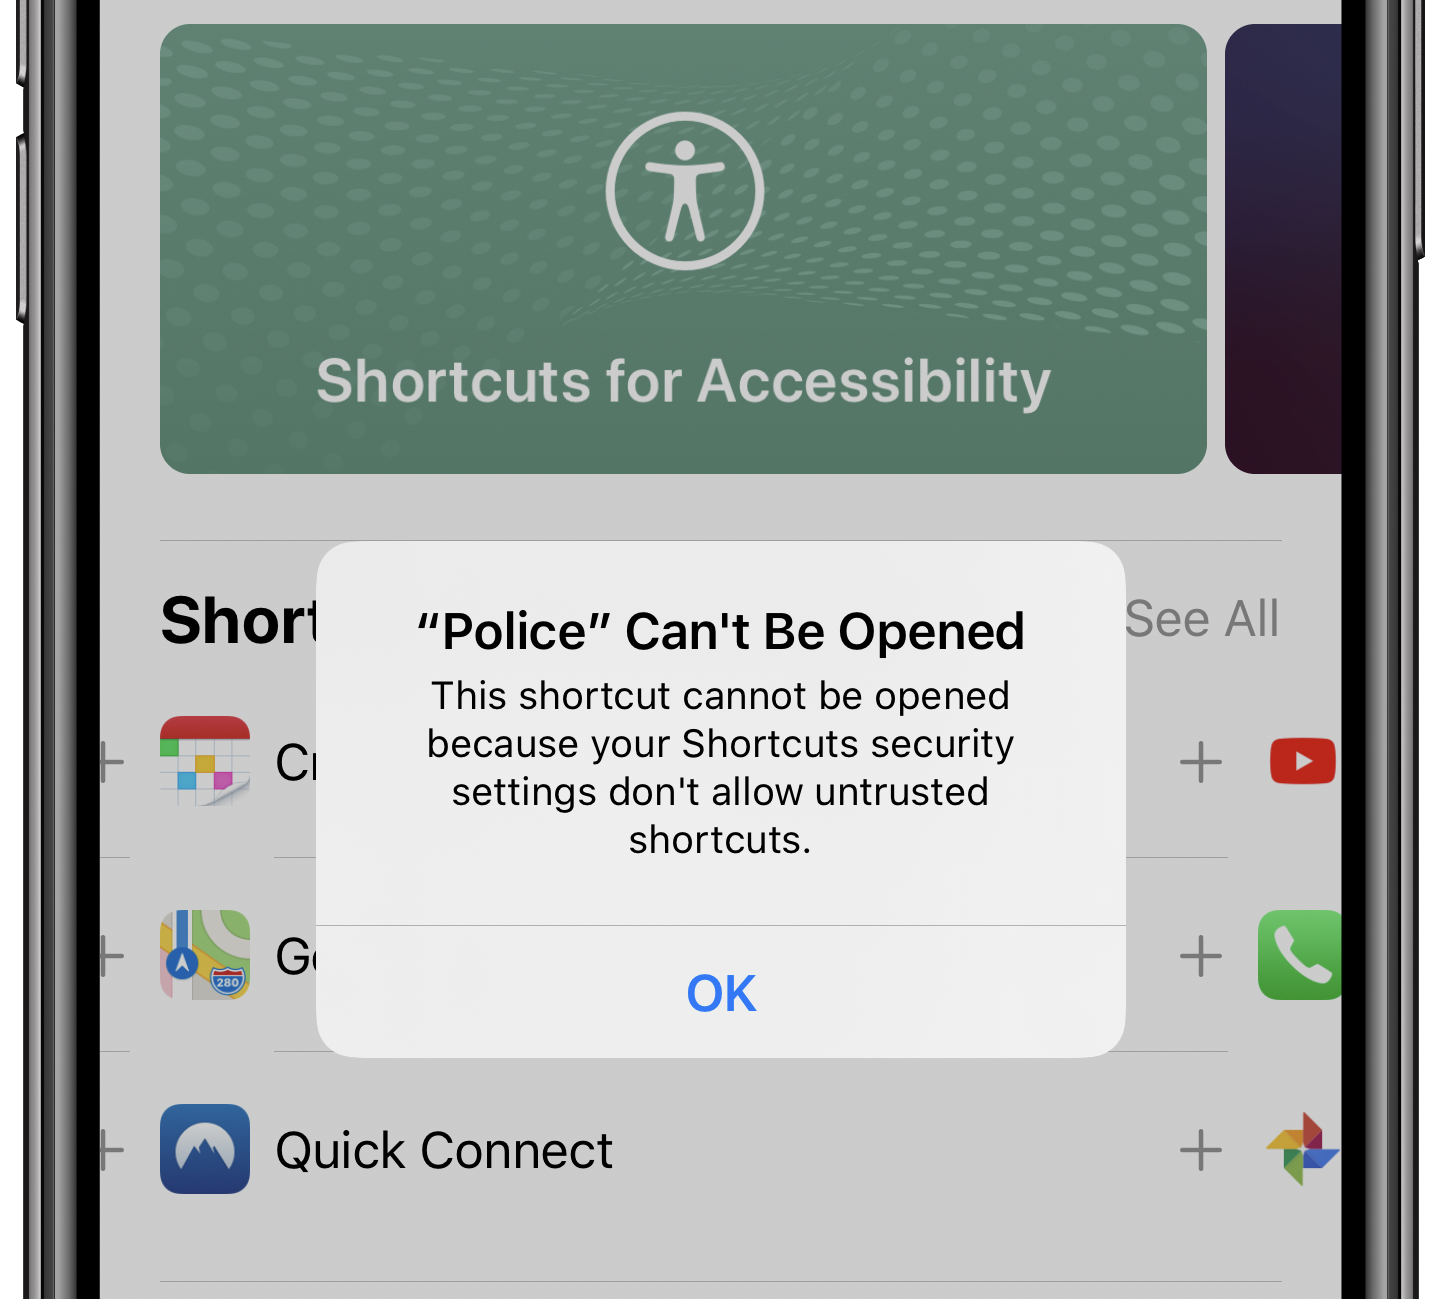 allow untrusted shortcuts on iPhone